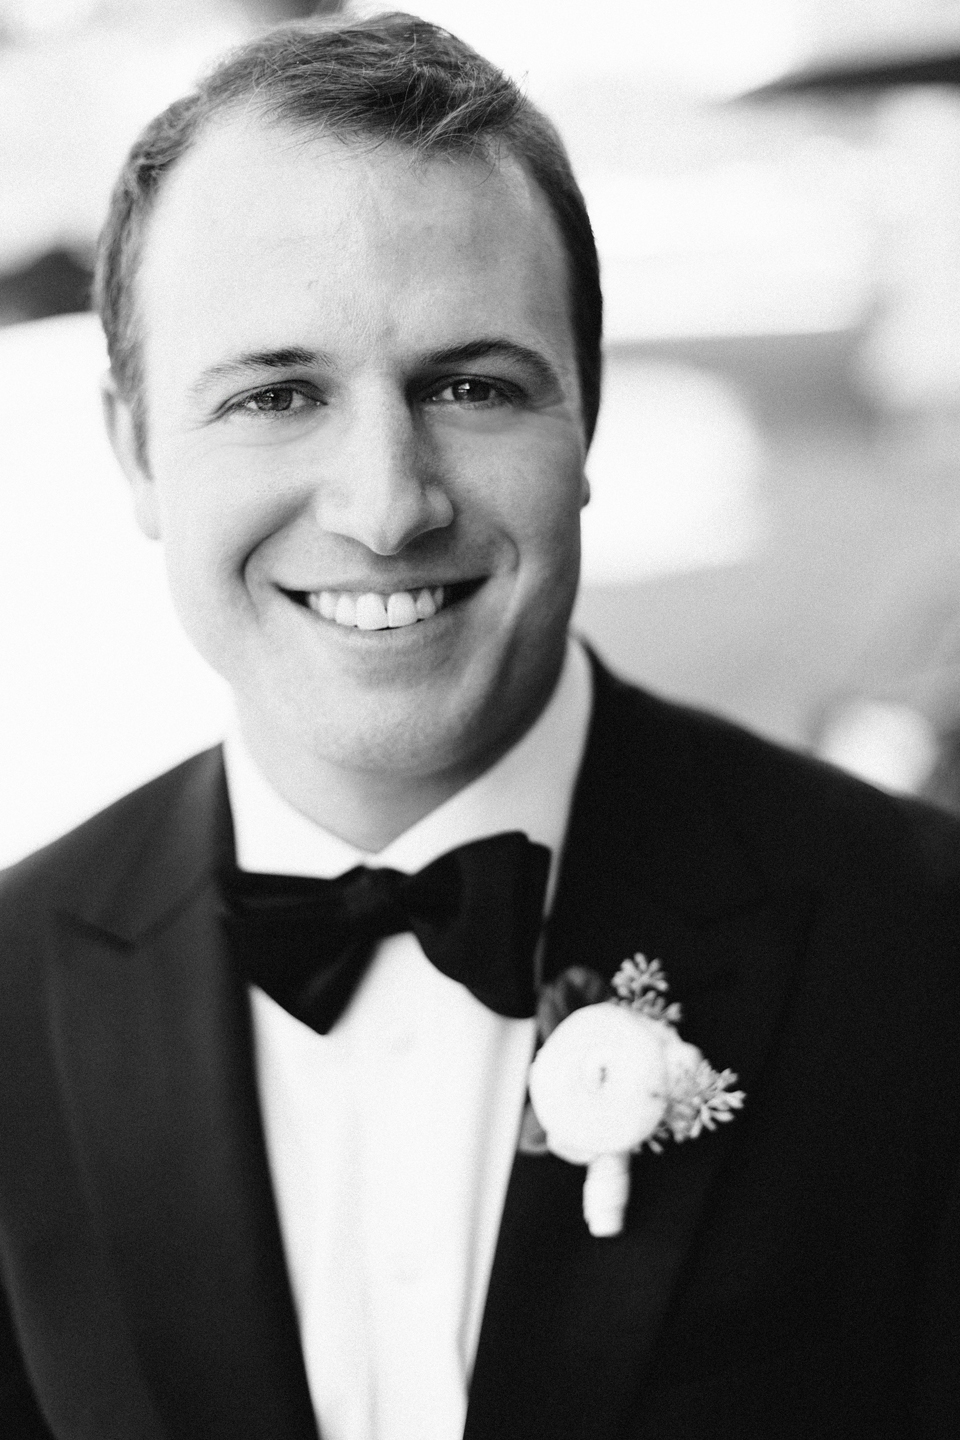 Image of a groom in a black tuxedo on this wedding day.  The groom is at the TPC Sawgrass in Ponte Vedra, Florida